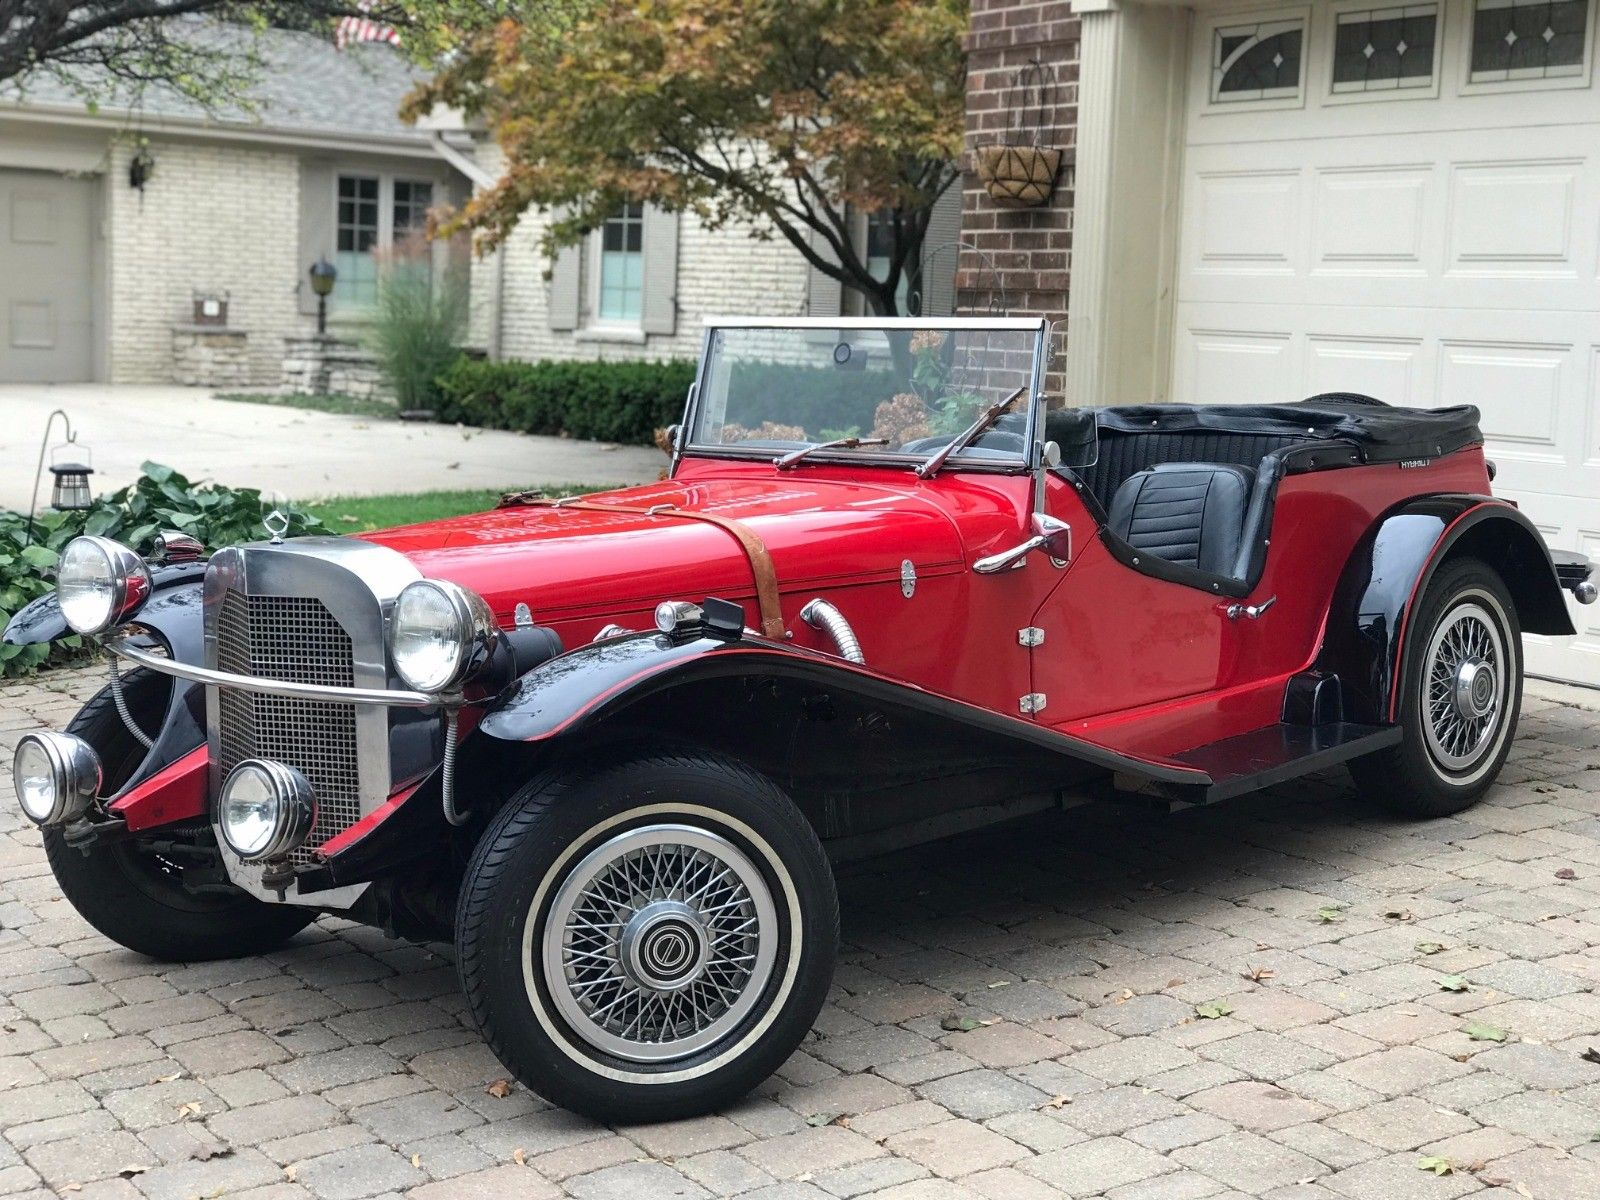 Pinto engine 1929 mercedes benz gazelle kit car replica for Mercedes benz used cars in germany for sale